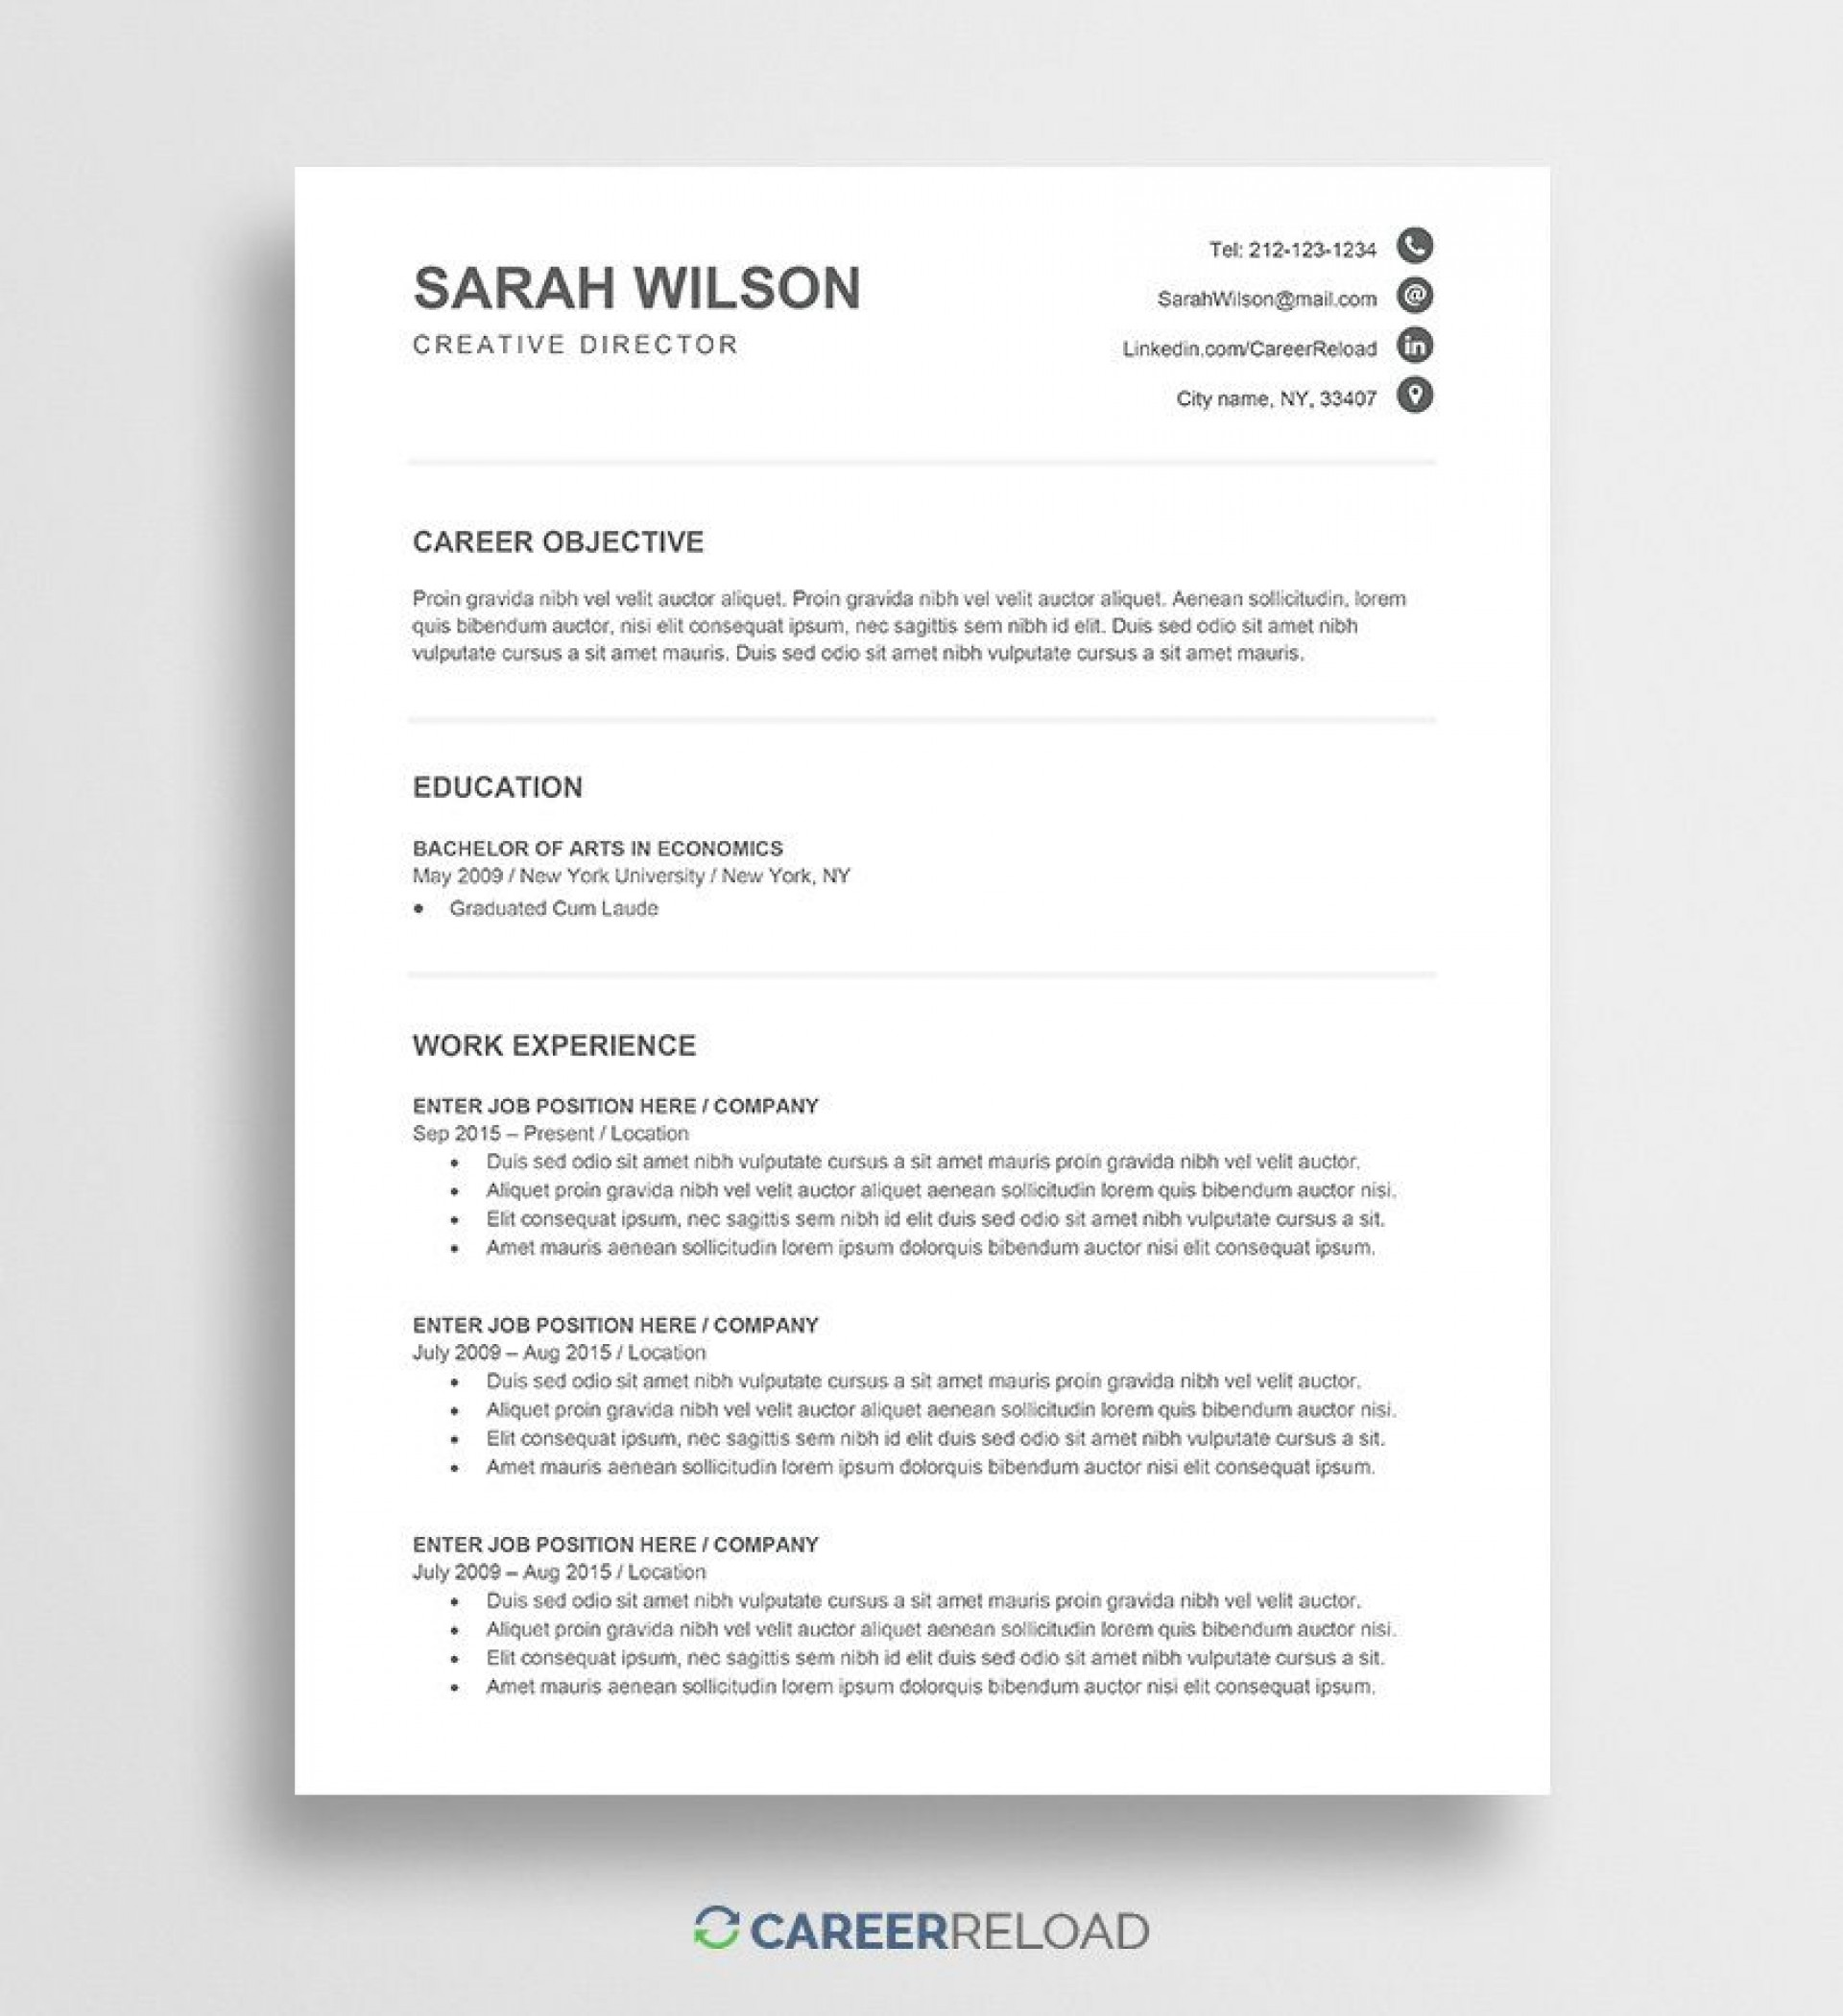 001 Top Entry Level Resume Template Google Doc High Resolution  Docs1920